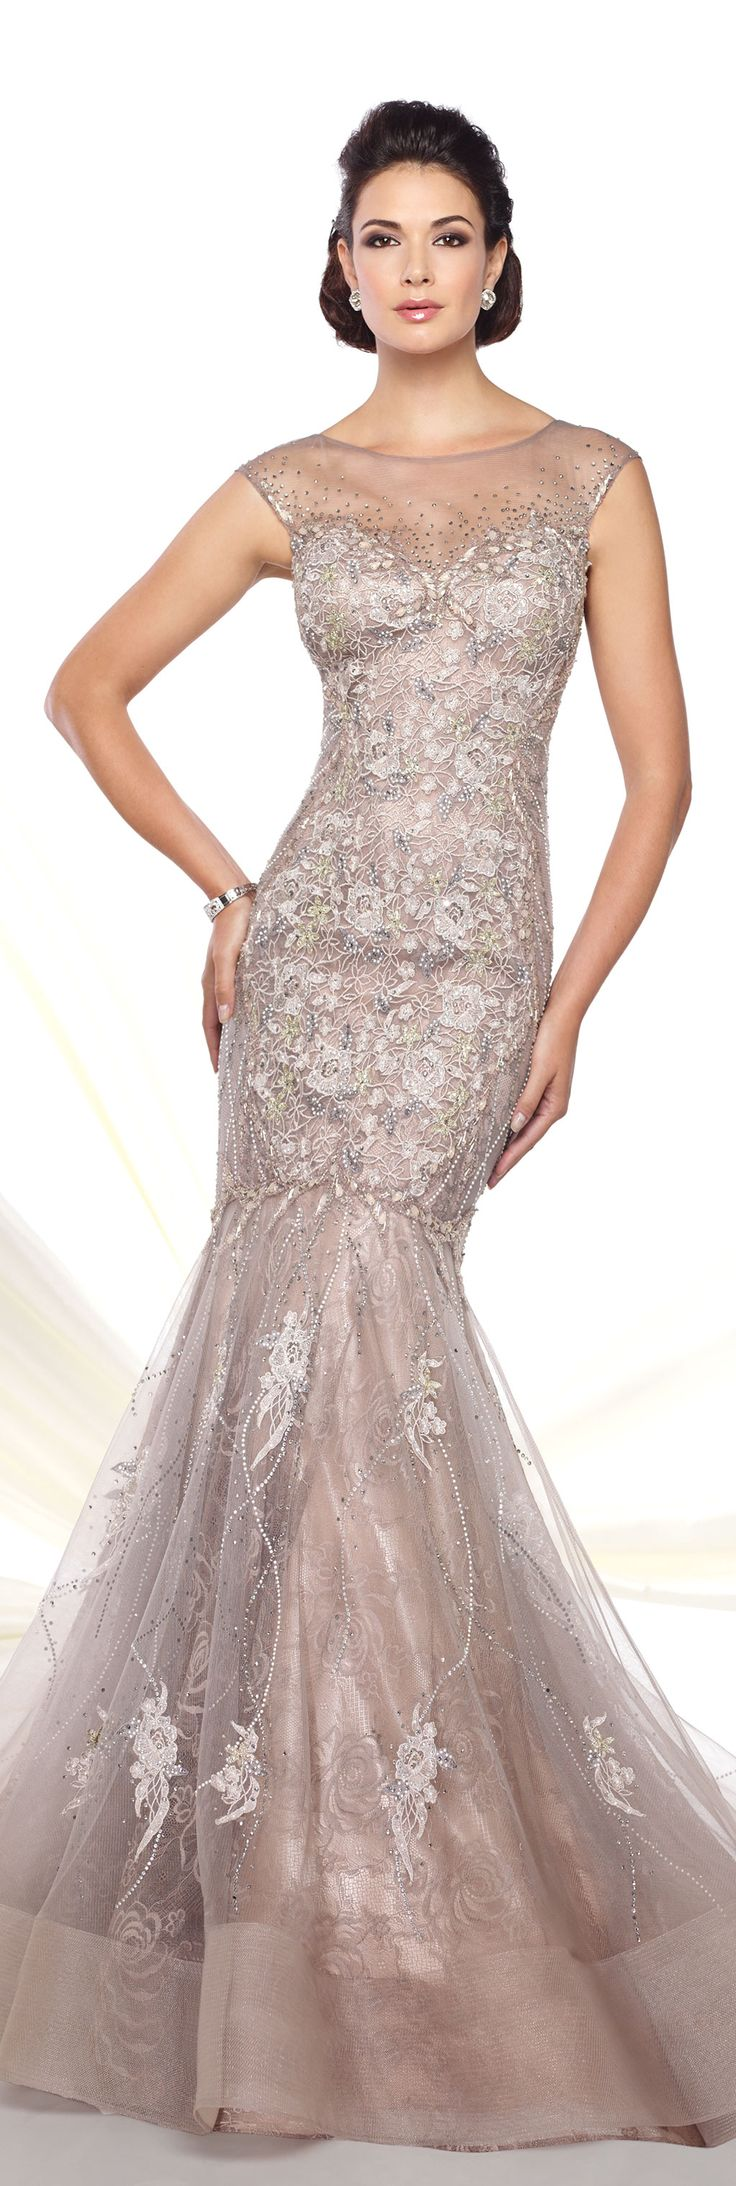 Formal Evening Gowns by Mon Cheri - Spring 2016 - Style No. 116D25 #eveninggowns